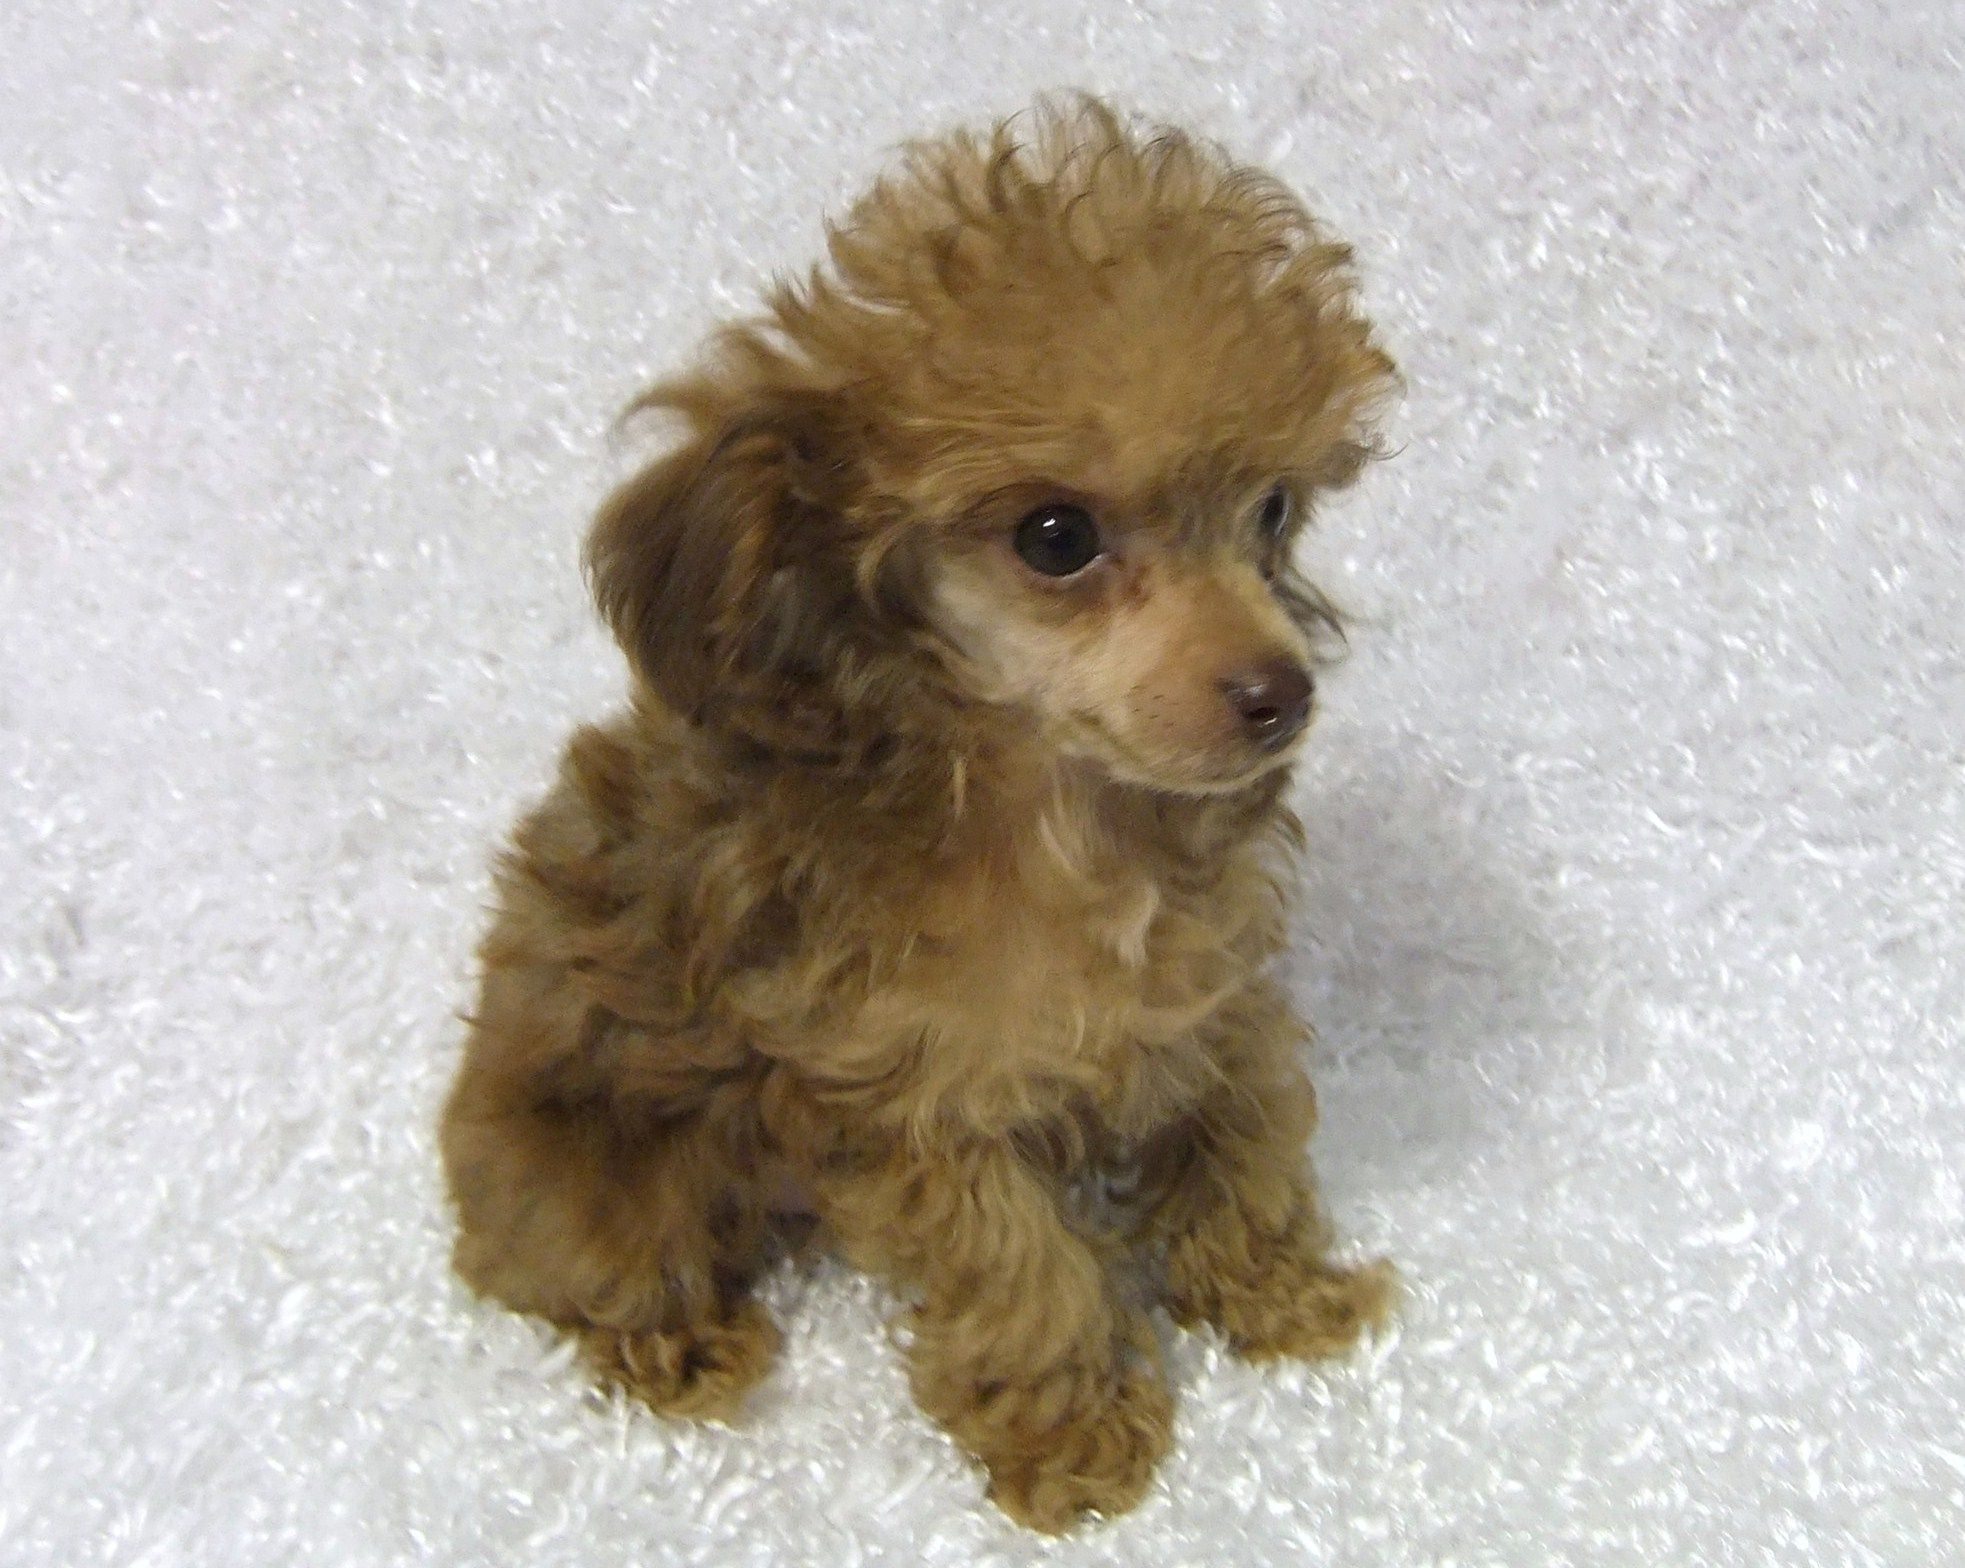 Teacup poodles teacup poodle puppies toy poodle puppies from myteacuppoodles com